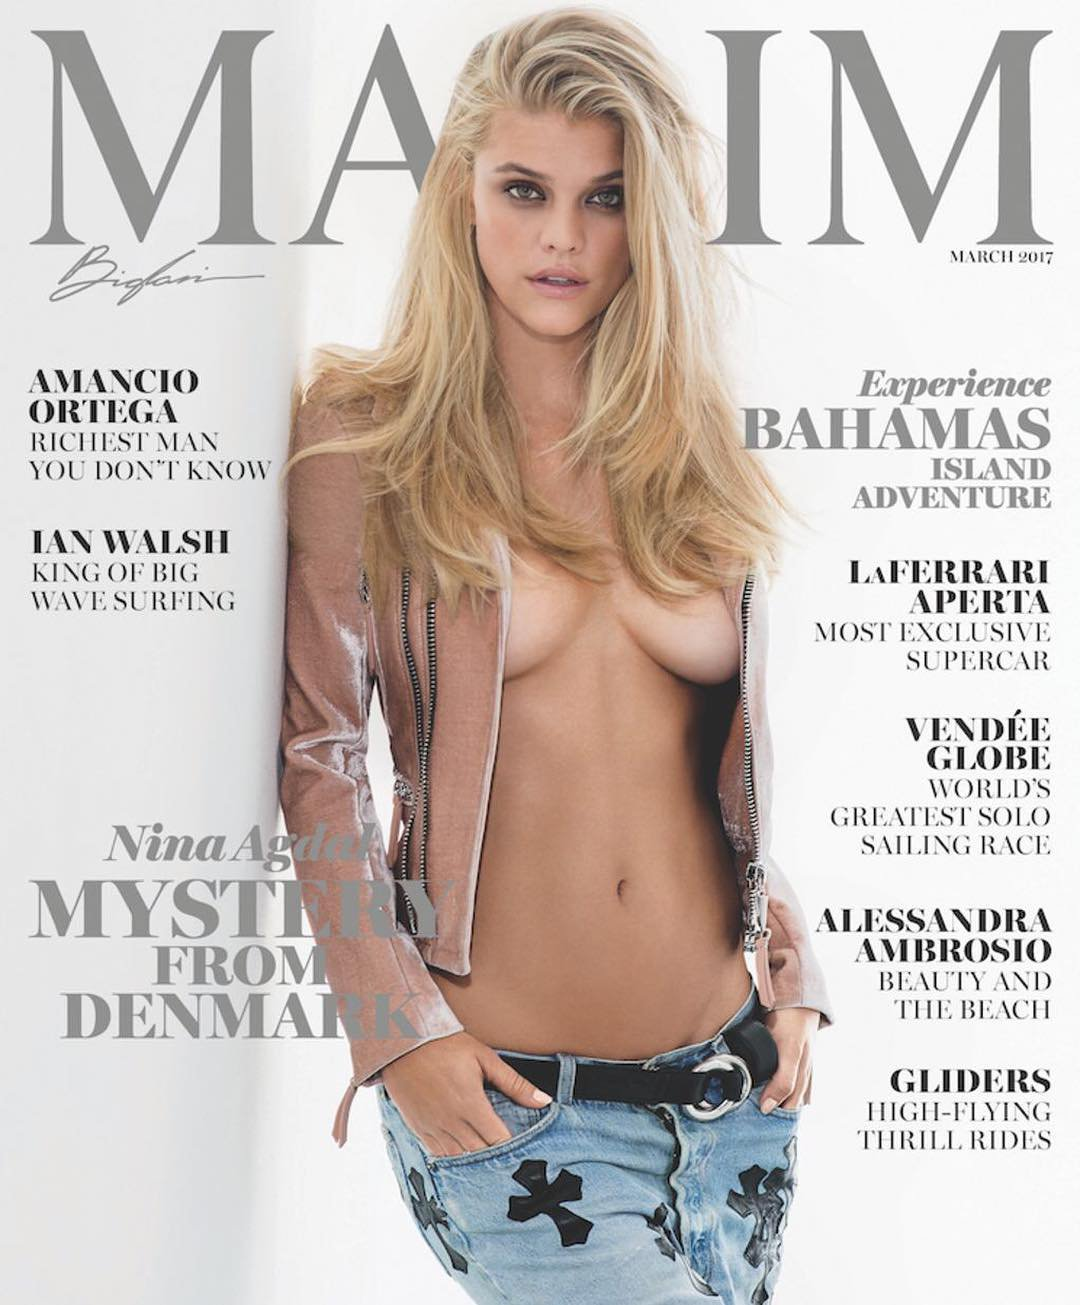 Nina Agdal goes braless for Maxim March 2017